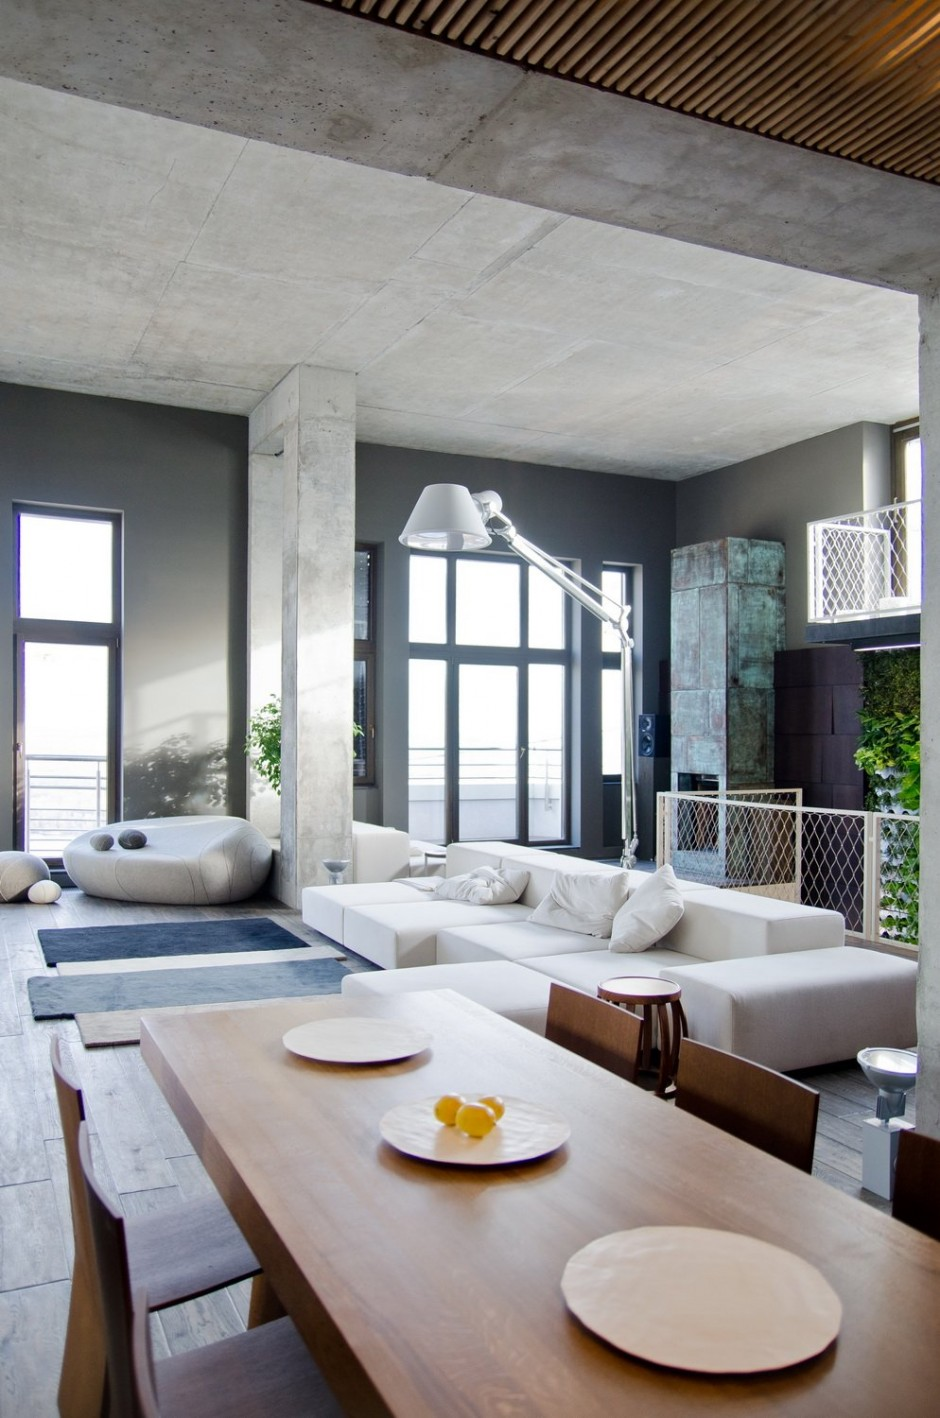 Luxury-Loft-Apartment-Design